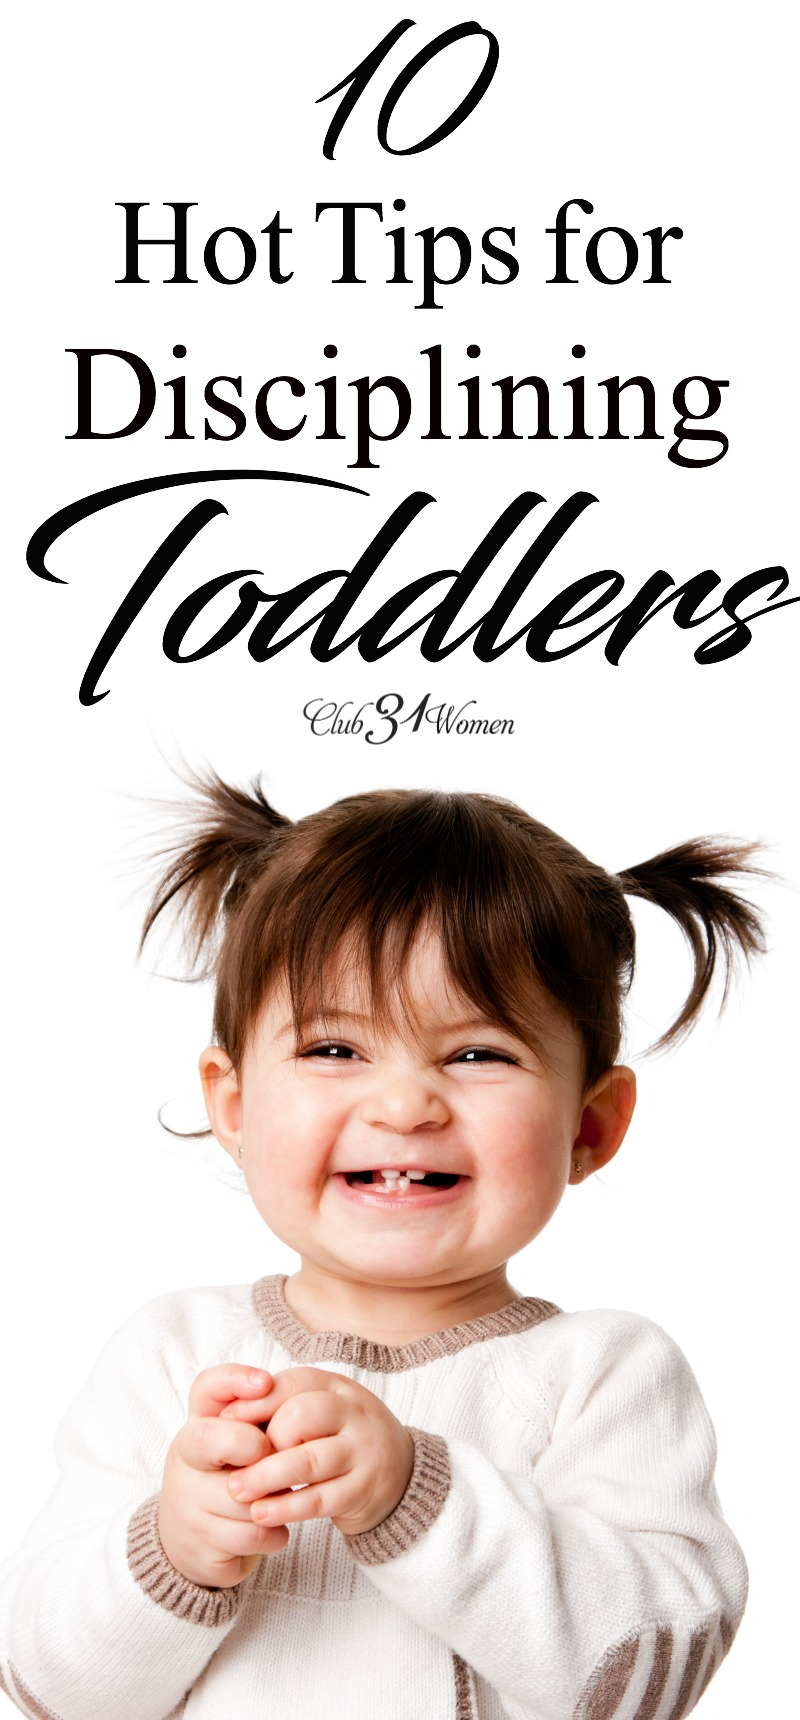 Disciplining and training toddlers can be tricky and exhausting. But with a little direction and know-how, toddlers can be very happy people! via @Club31Women